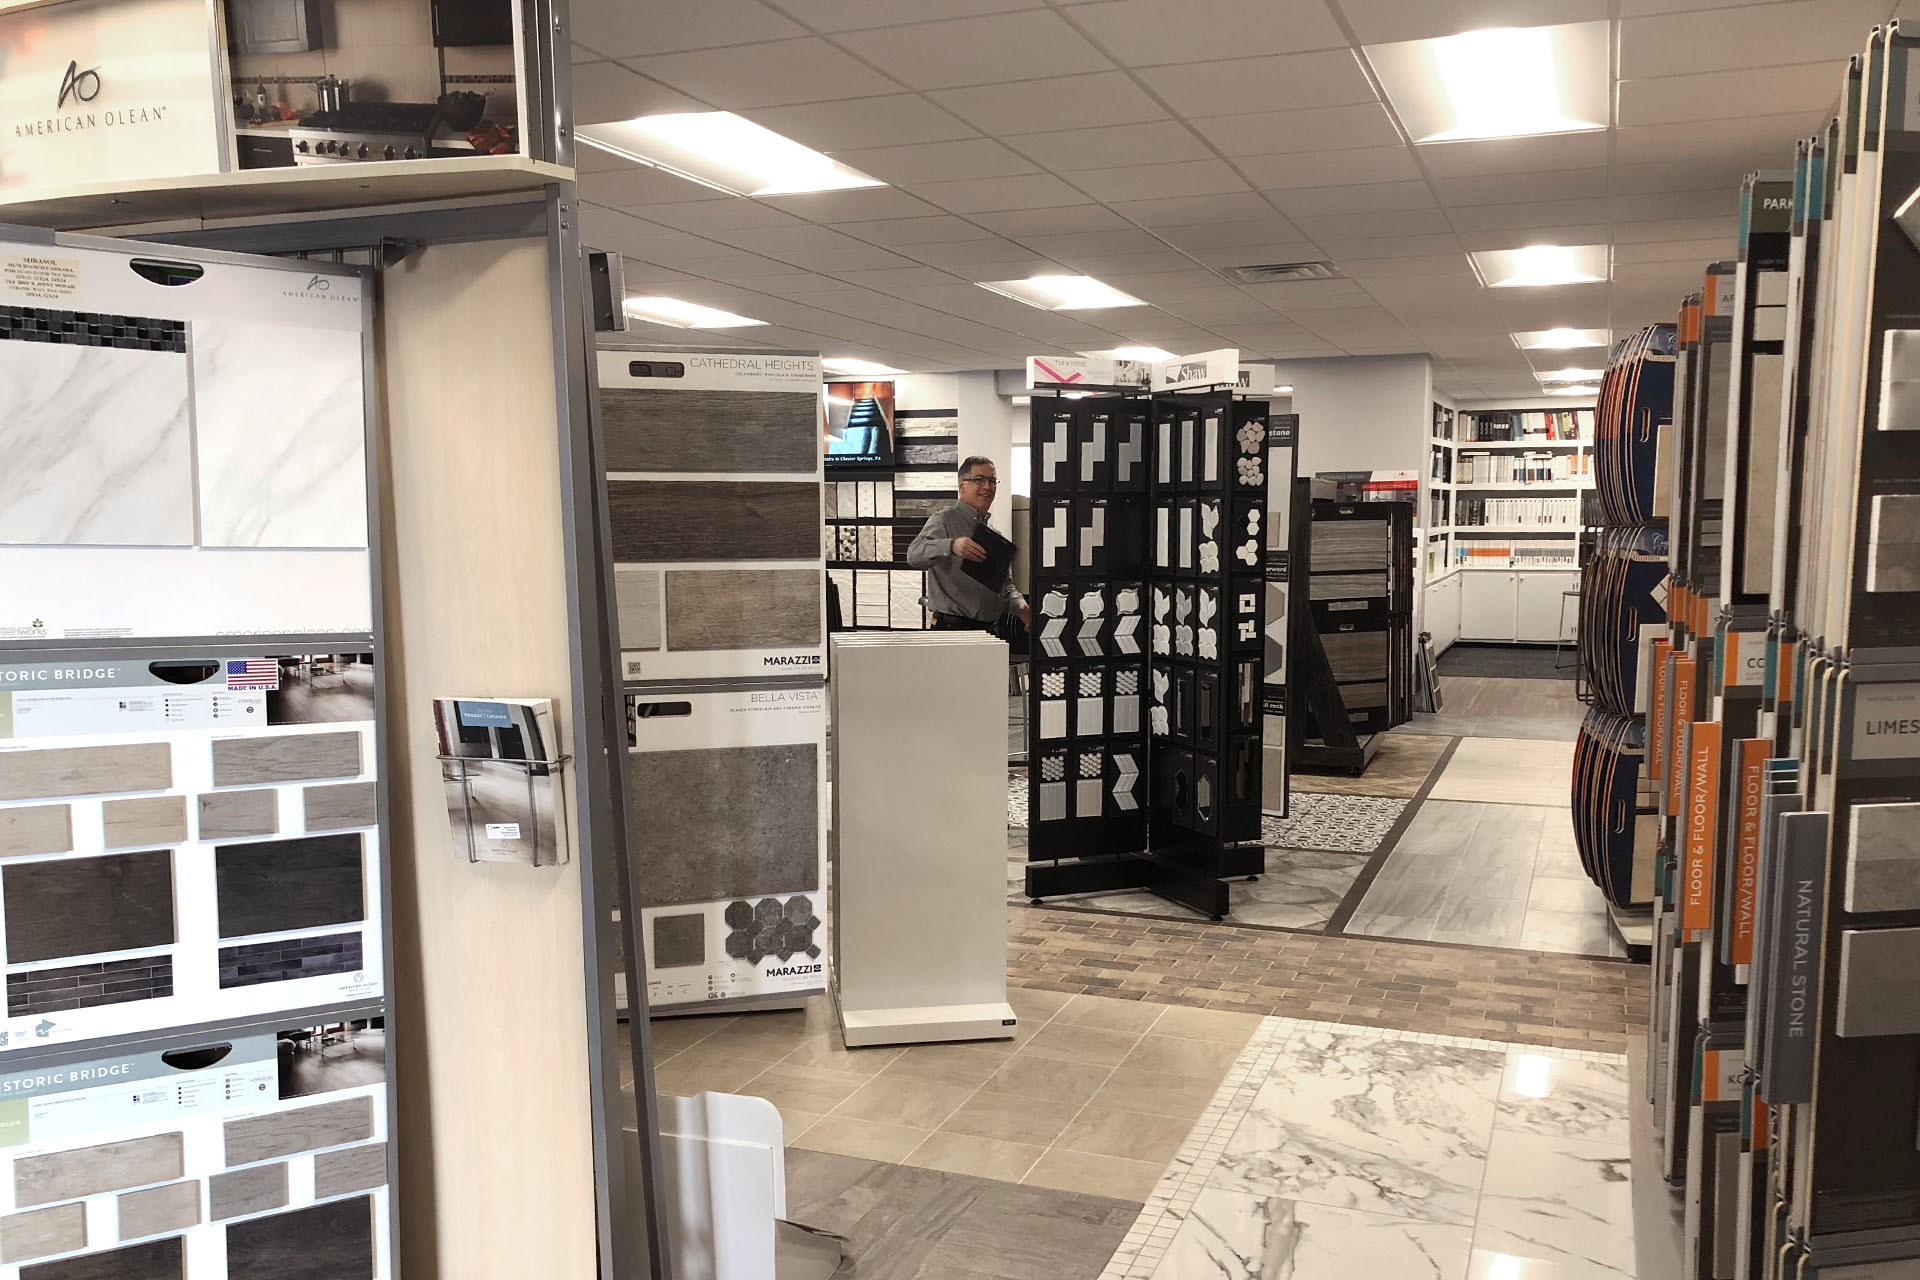 6804-2-after-showroom-march-2019-dandsflooring.jpg